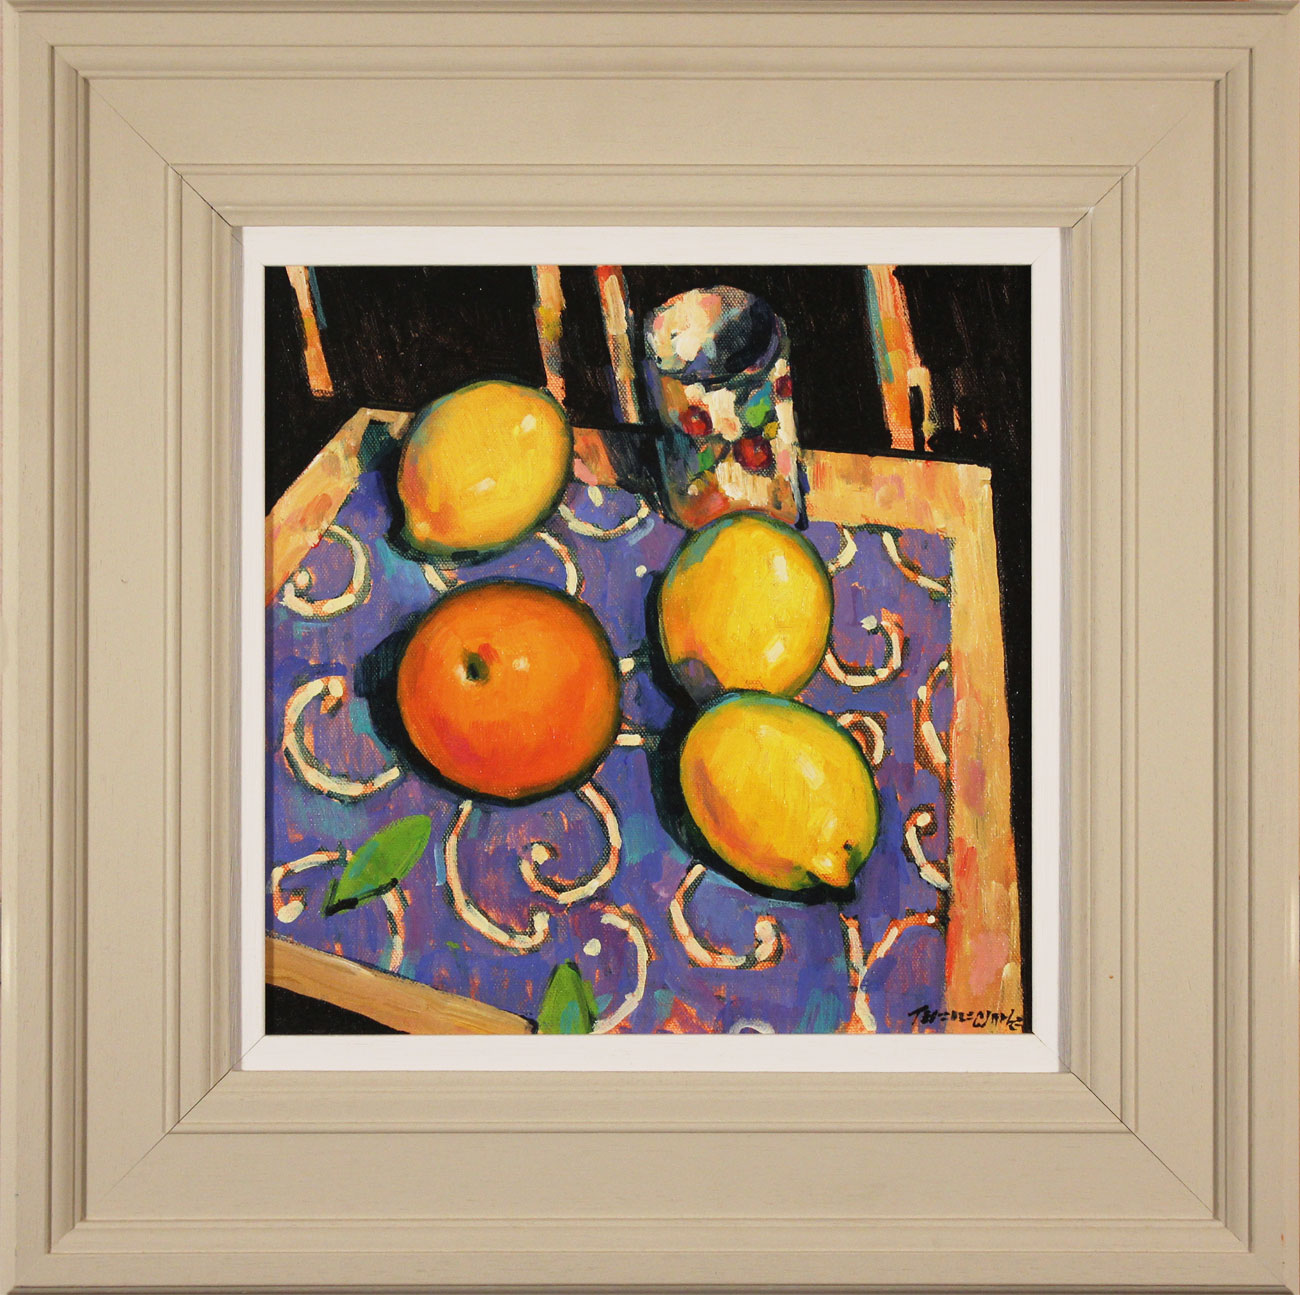 Terence Clarke, Original acrylic painting on canvas, Spanish Lemons, click to enlarge